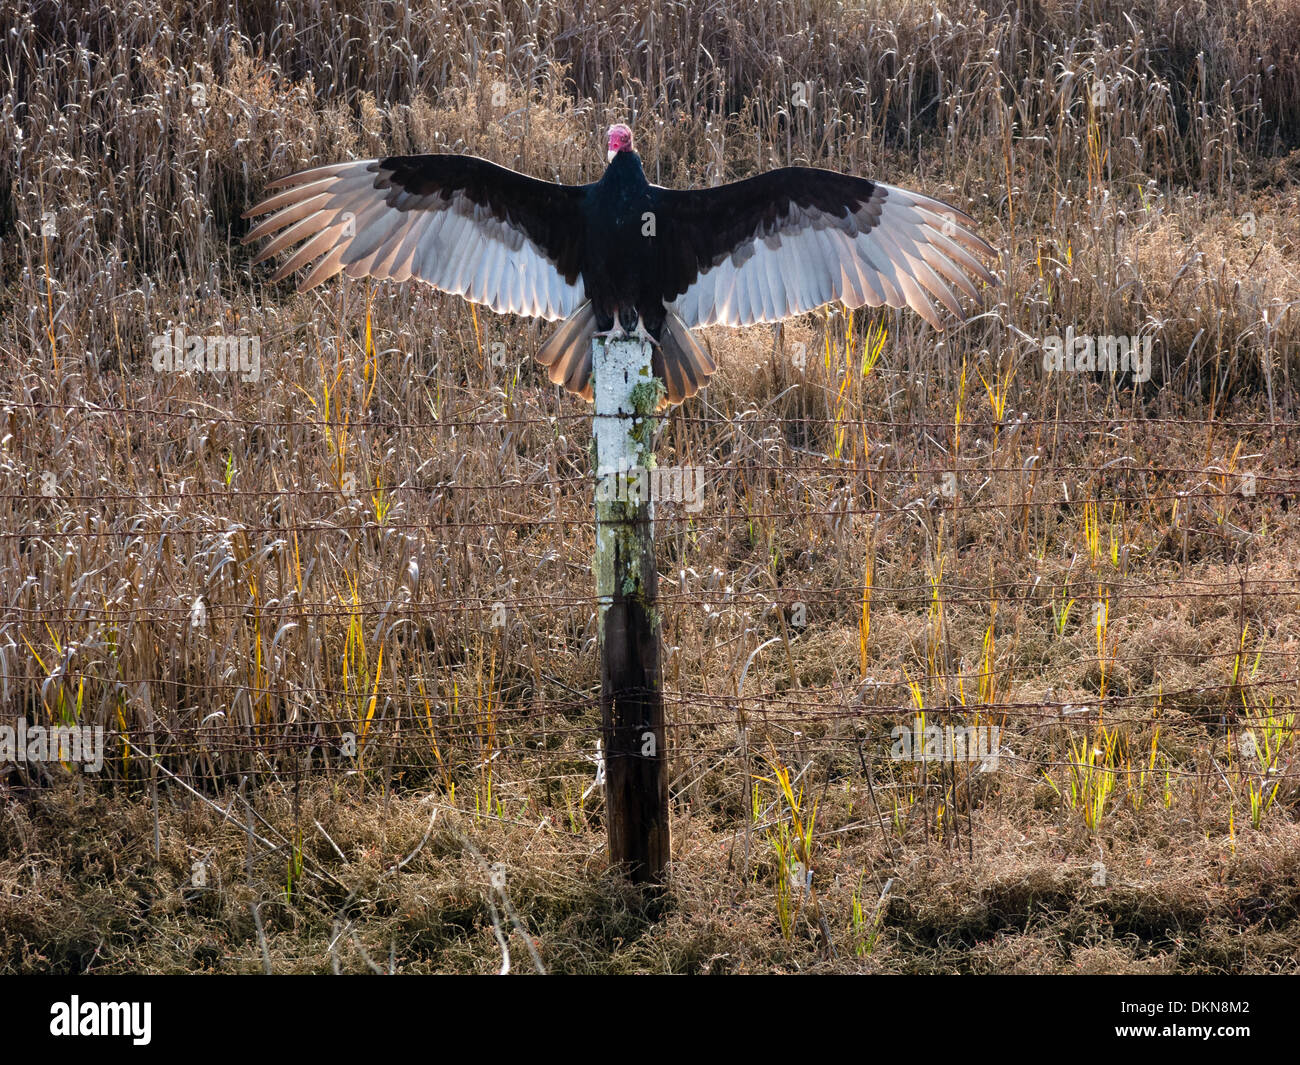 Turkey Vulture (Cathartes aura) sitting on fence post spreading its wings to warm itself in the morning. - Stock Image